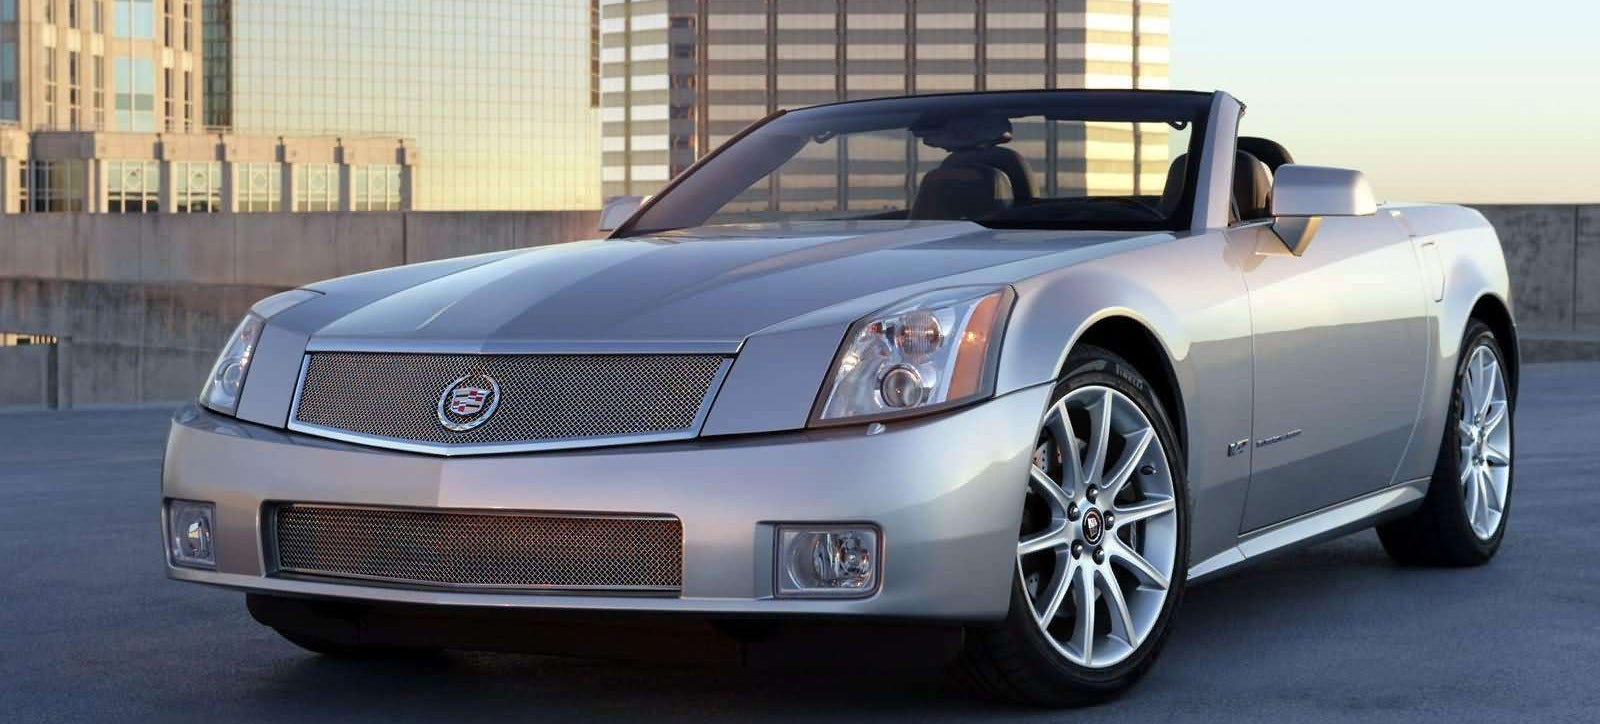 Cadillac Showed Dealers Plans For Convertible New Small Sedan